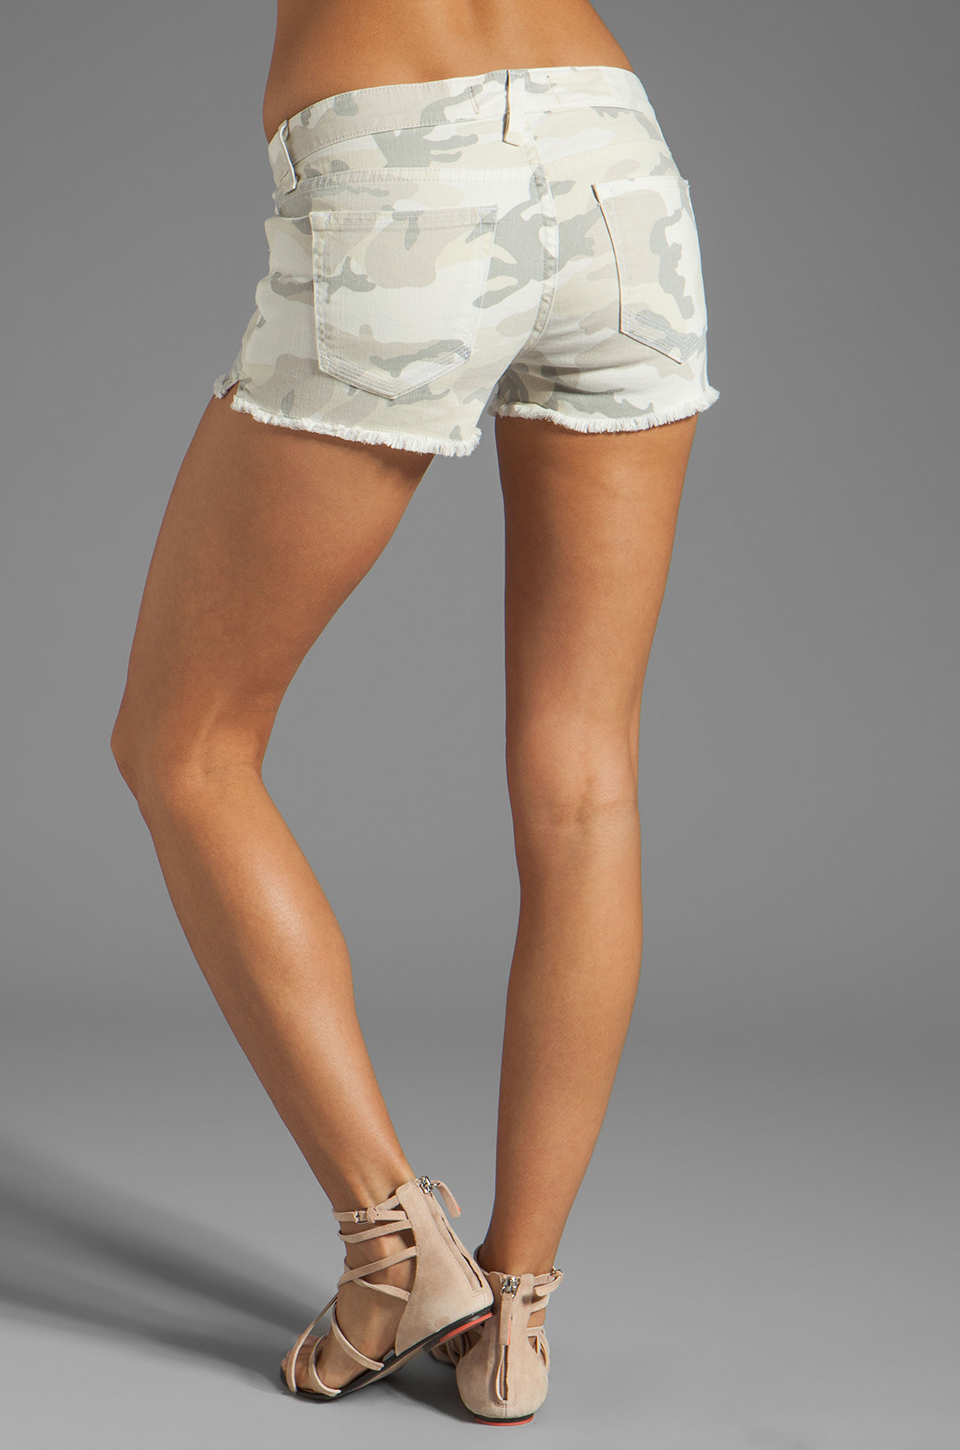 TEXTILE Elizabeth and James Cooper Short in White Camo